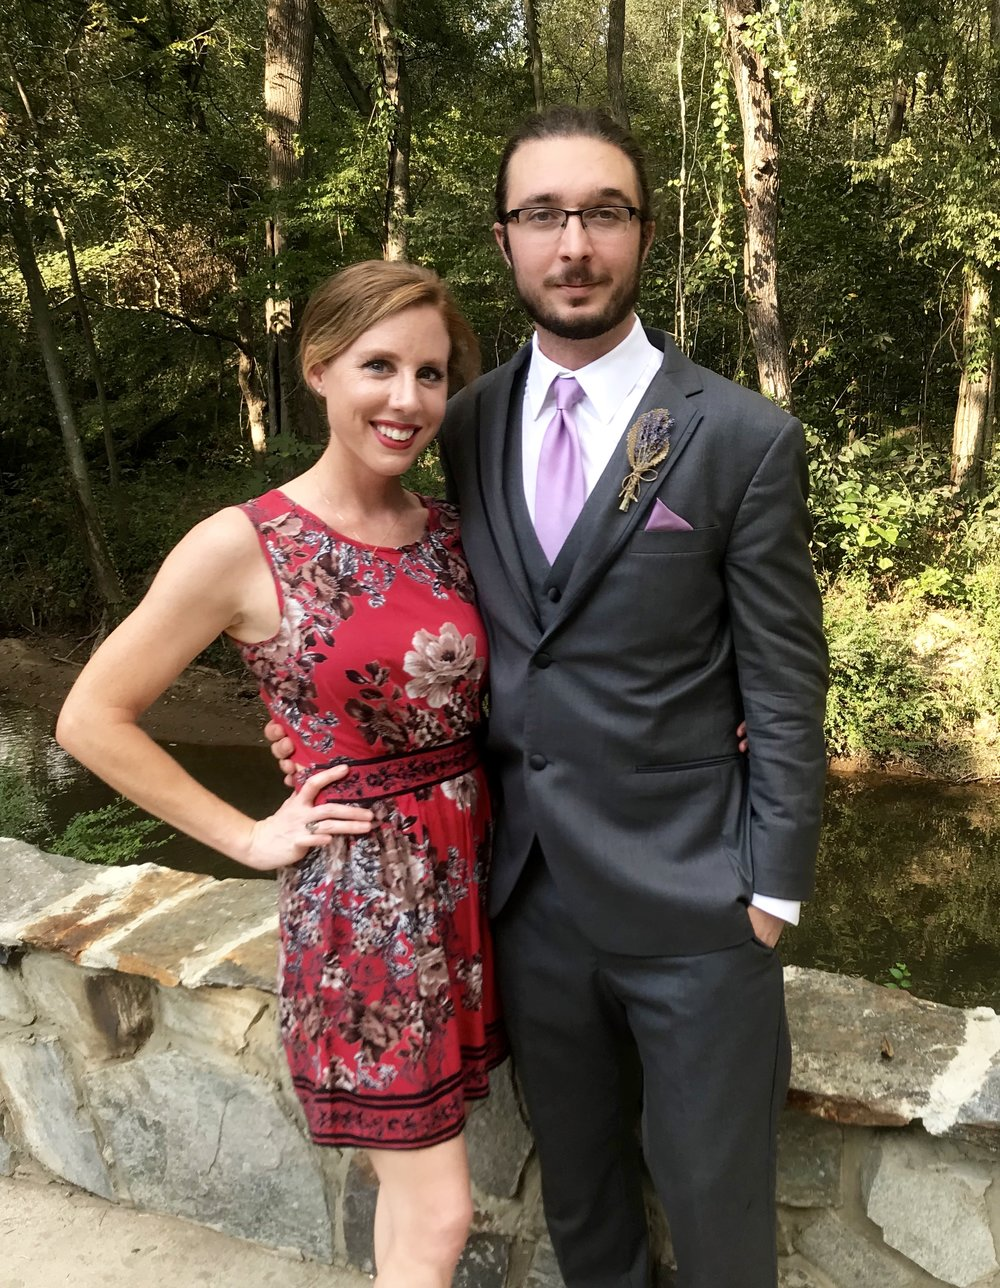 One more wedding pic from Saturday bc I love this dress and this man <3